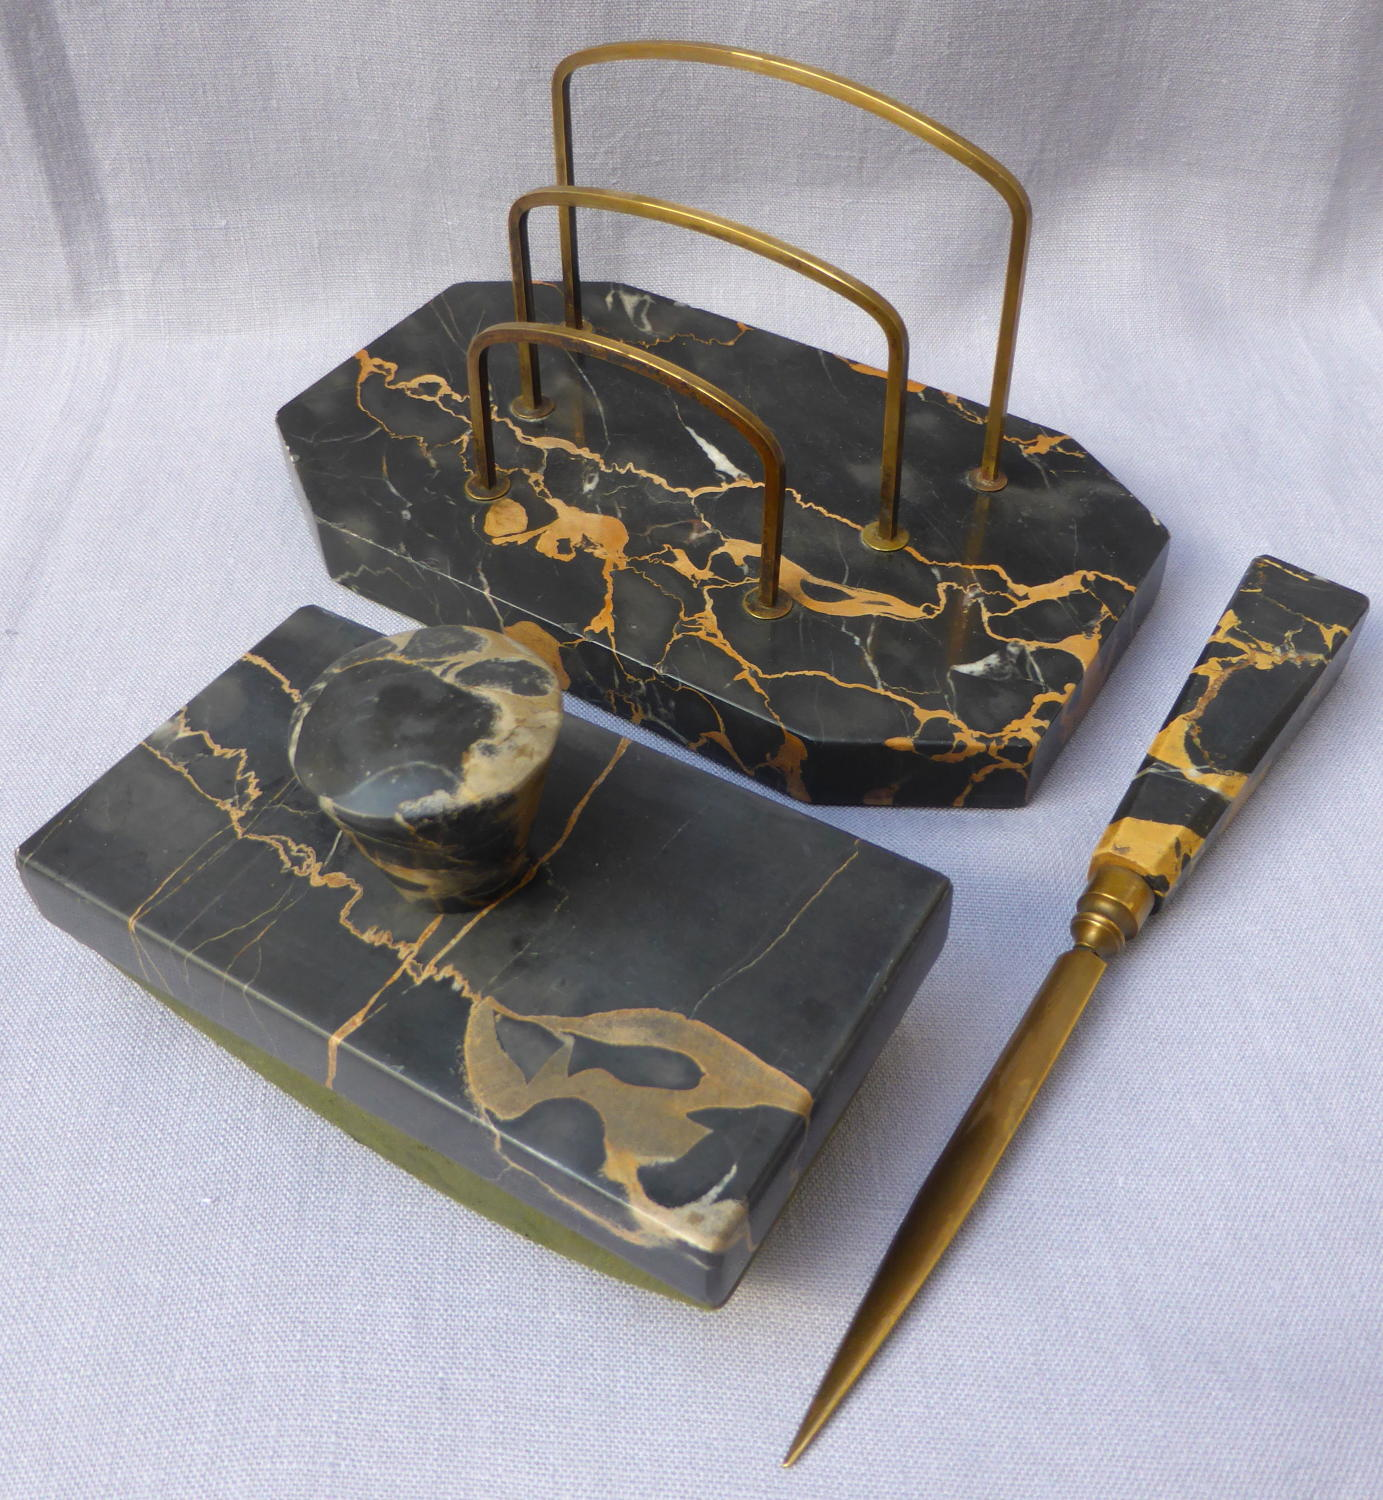 Art Deco Portoro marble desk set